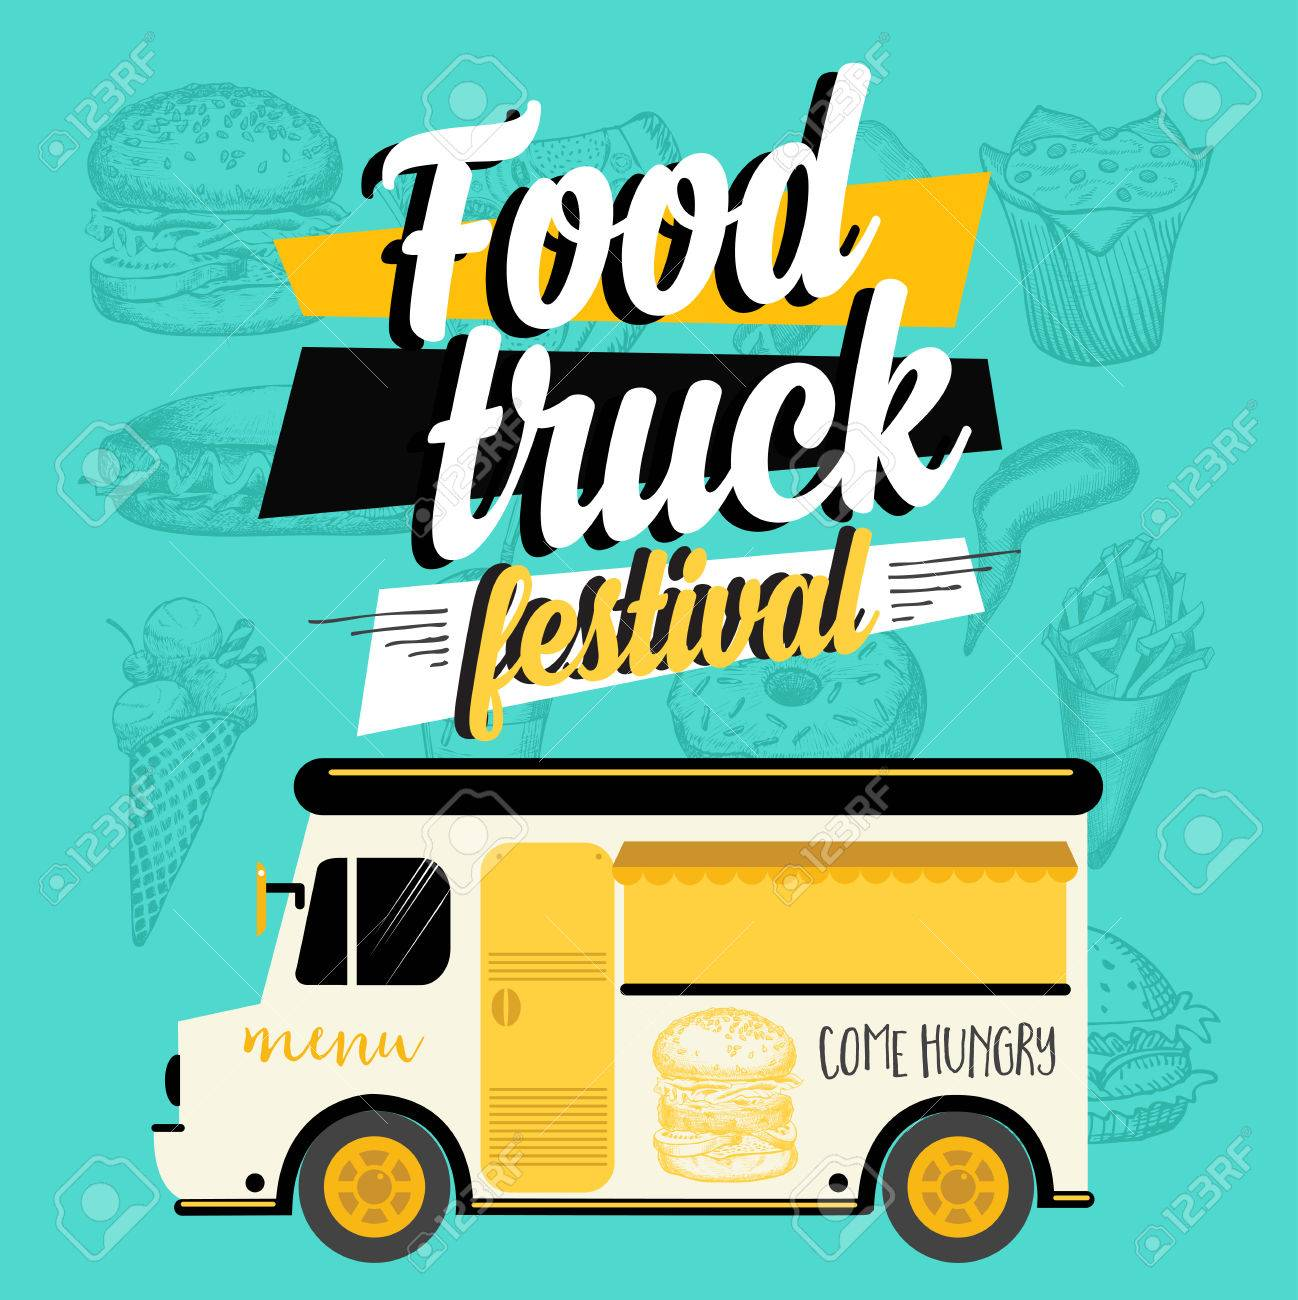 Free Food Truck Design Template Food Truck Design Inspiration - Food truck design template